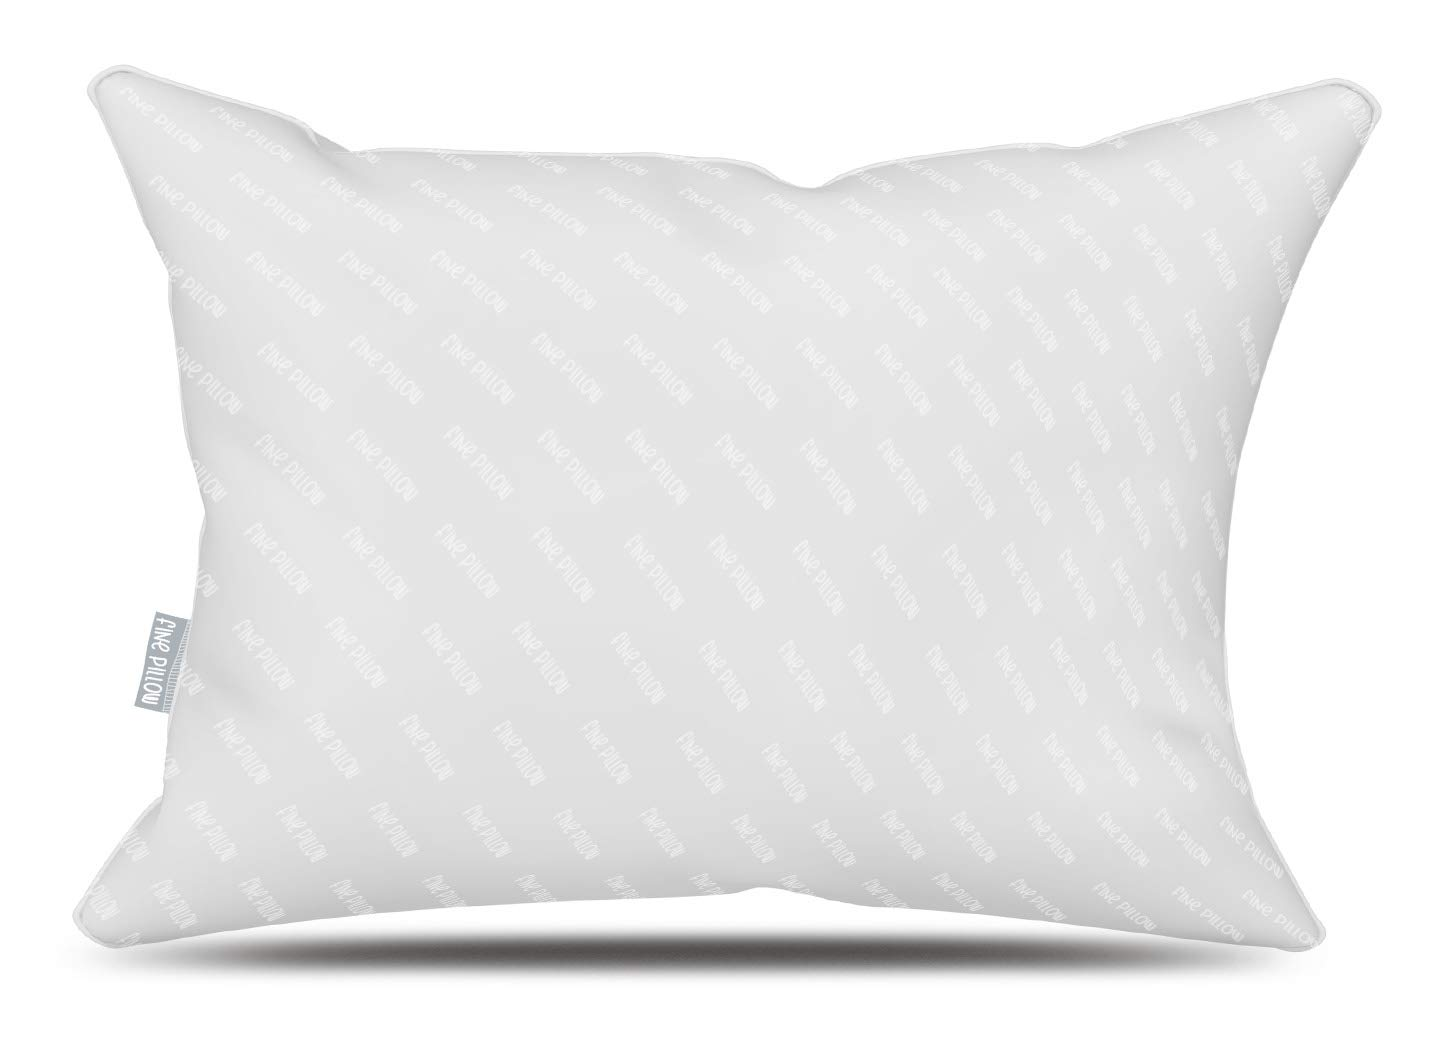 Fine Pillow, Best for Stomach Sleepers